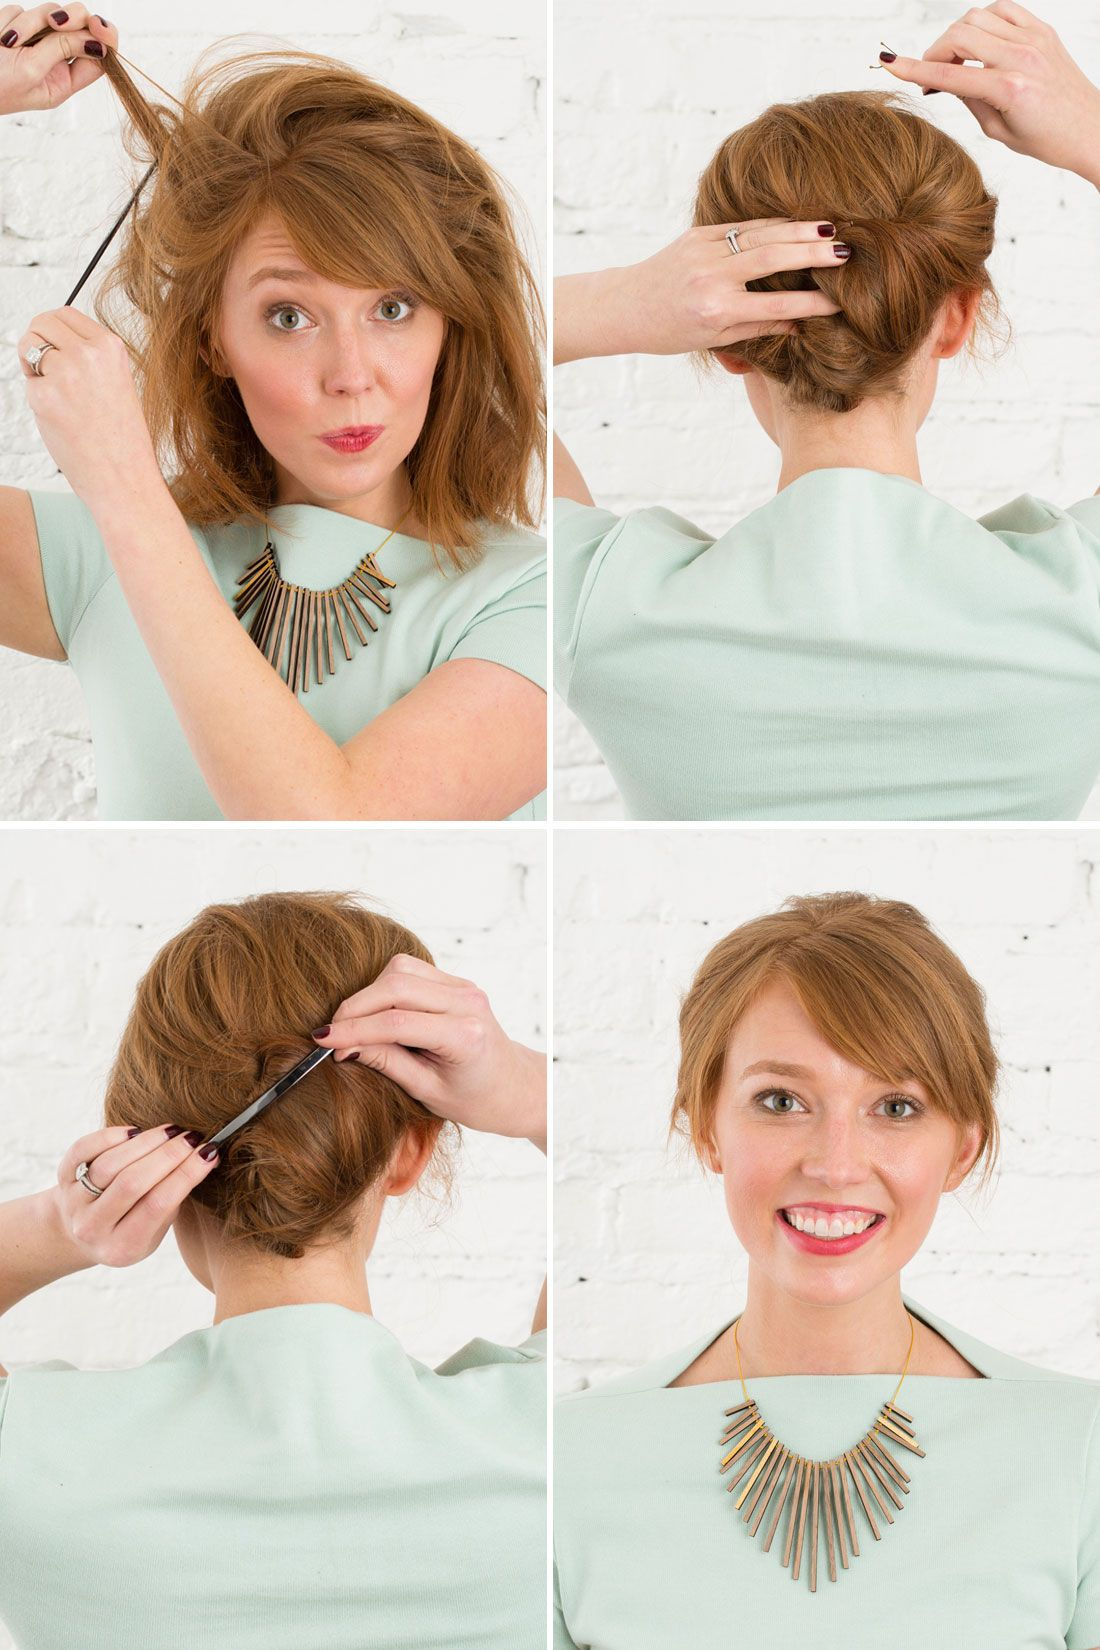 Barrette Hairstyles Interesting 3 Easy 5Minute Hairstyles Using Emma Stone's Metal Barrette  Updo